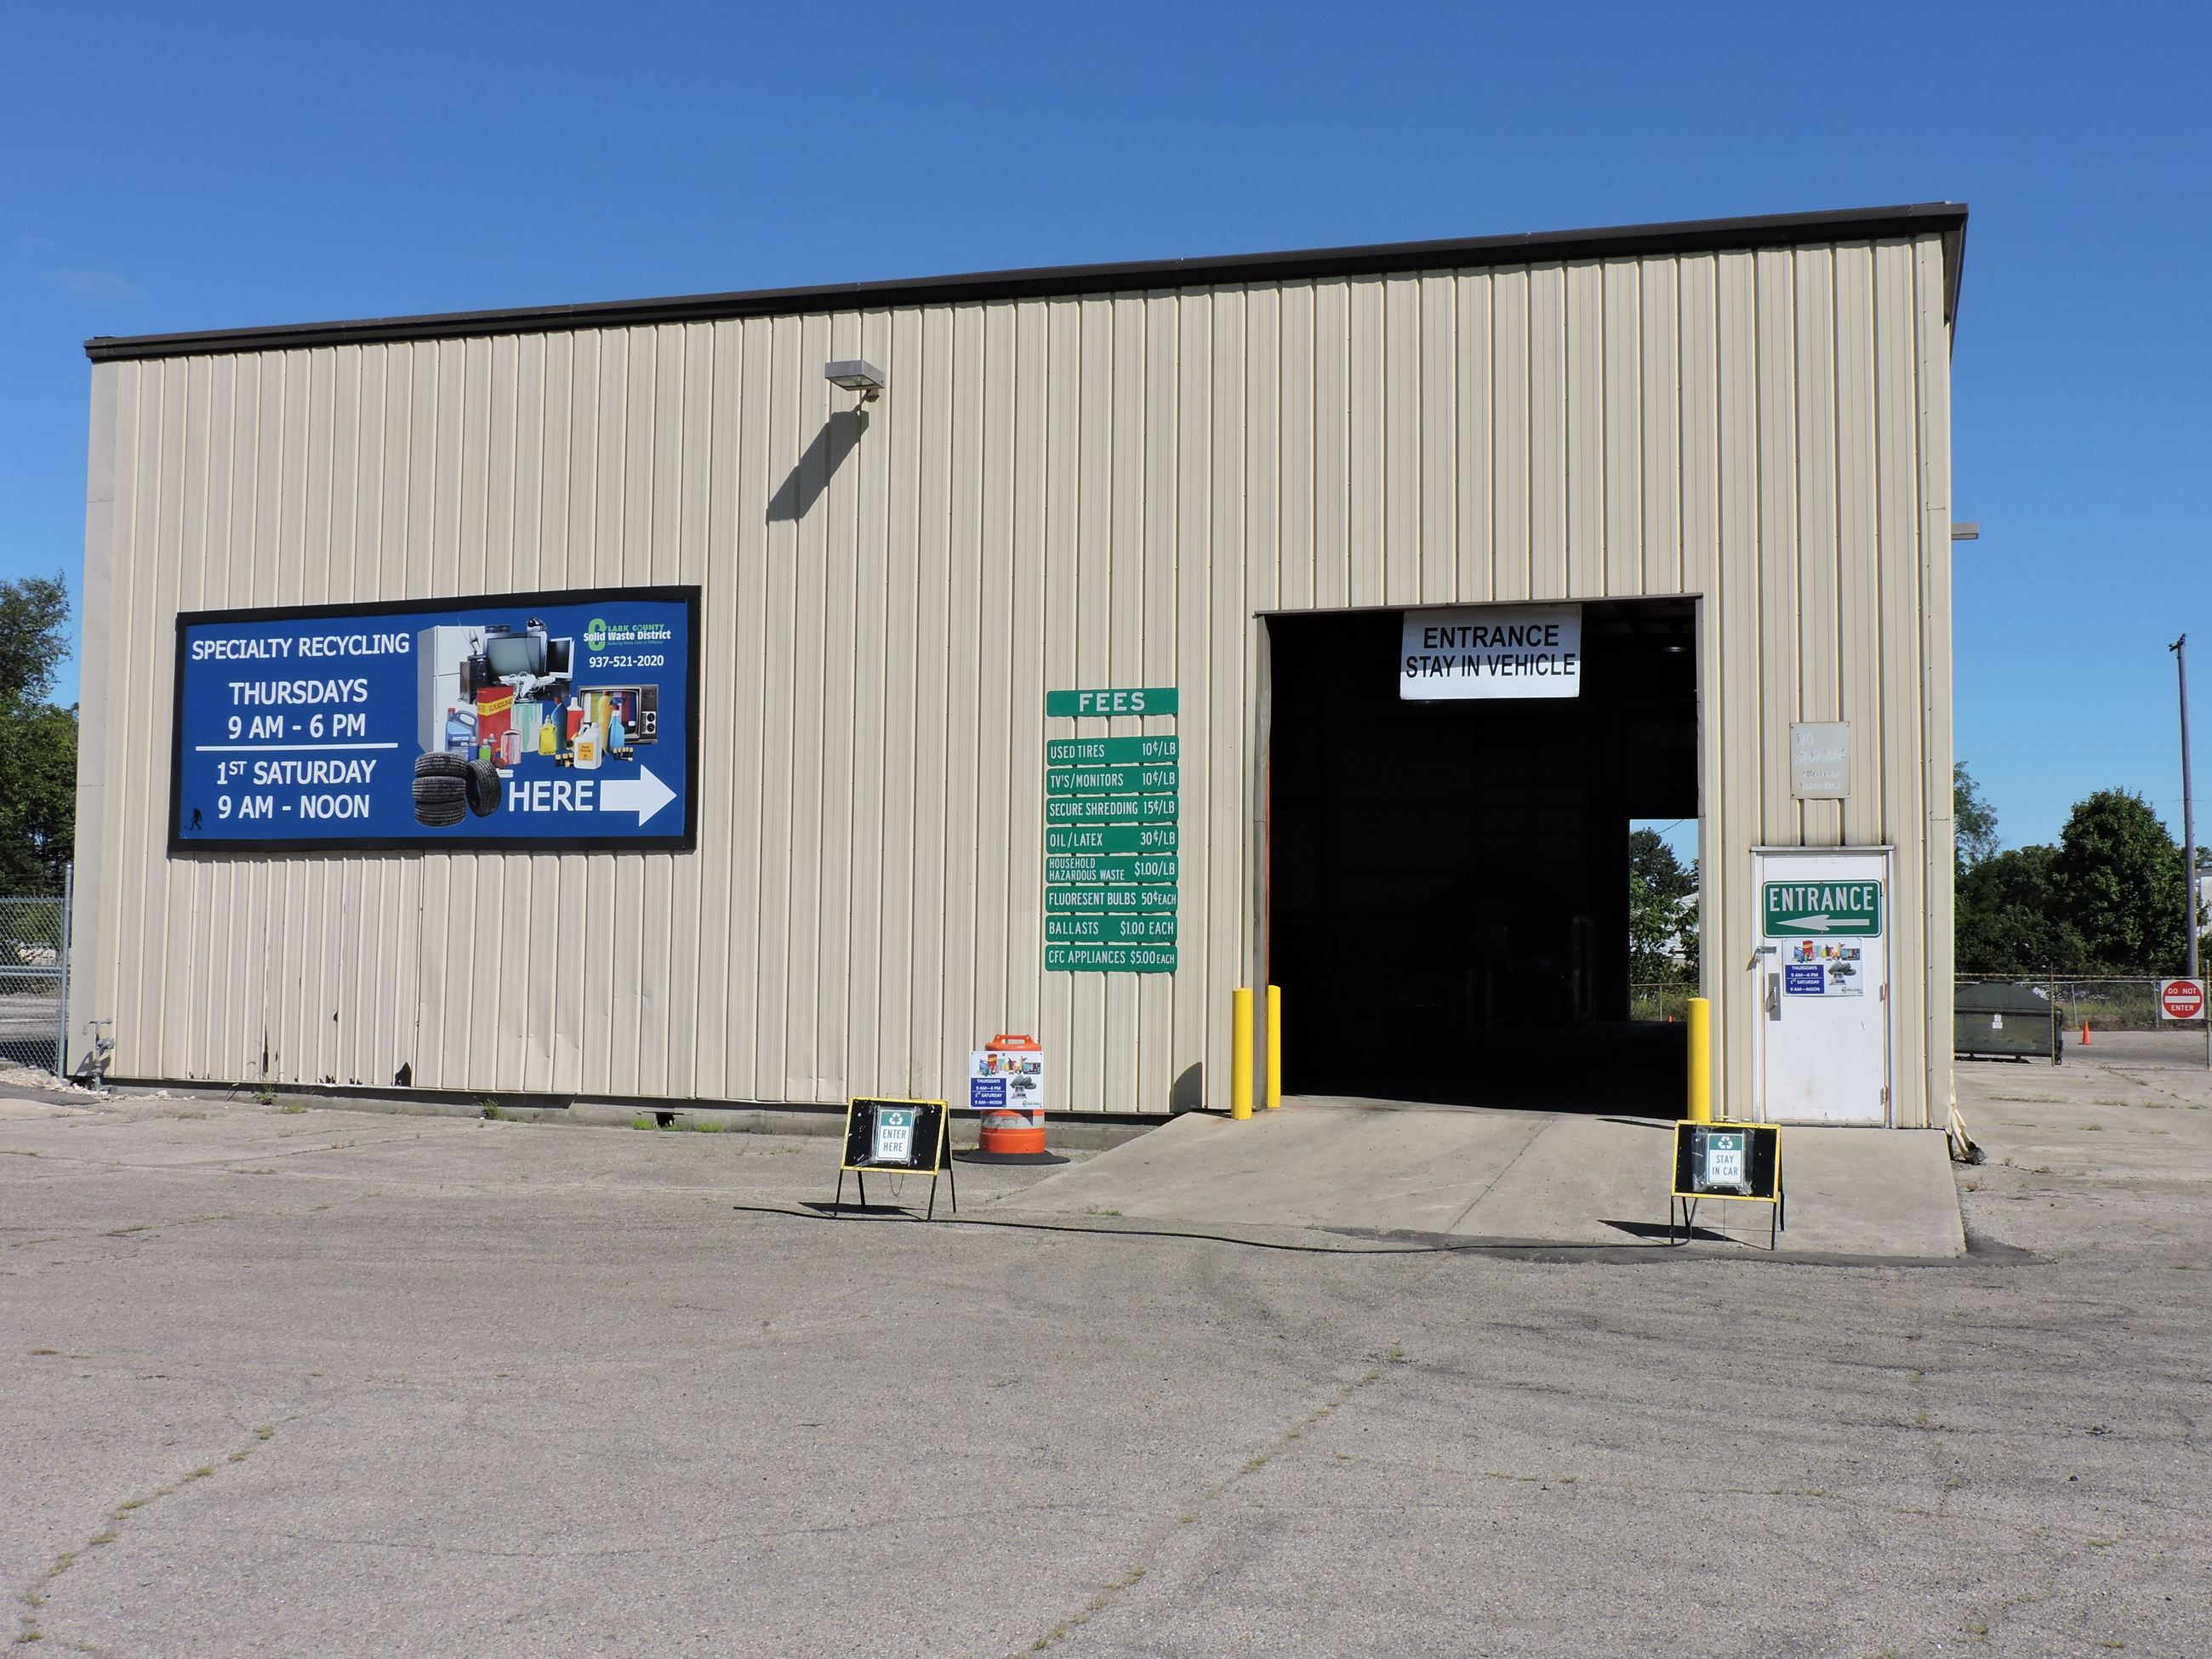 Clark County Specialty Recycling Center